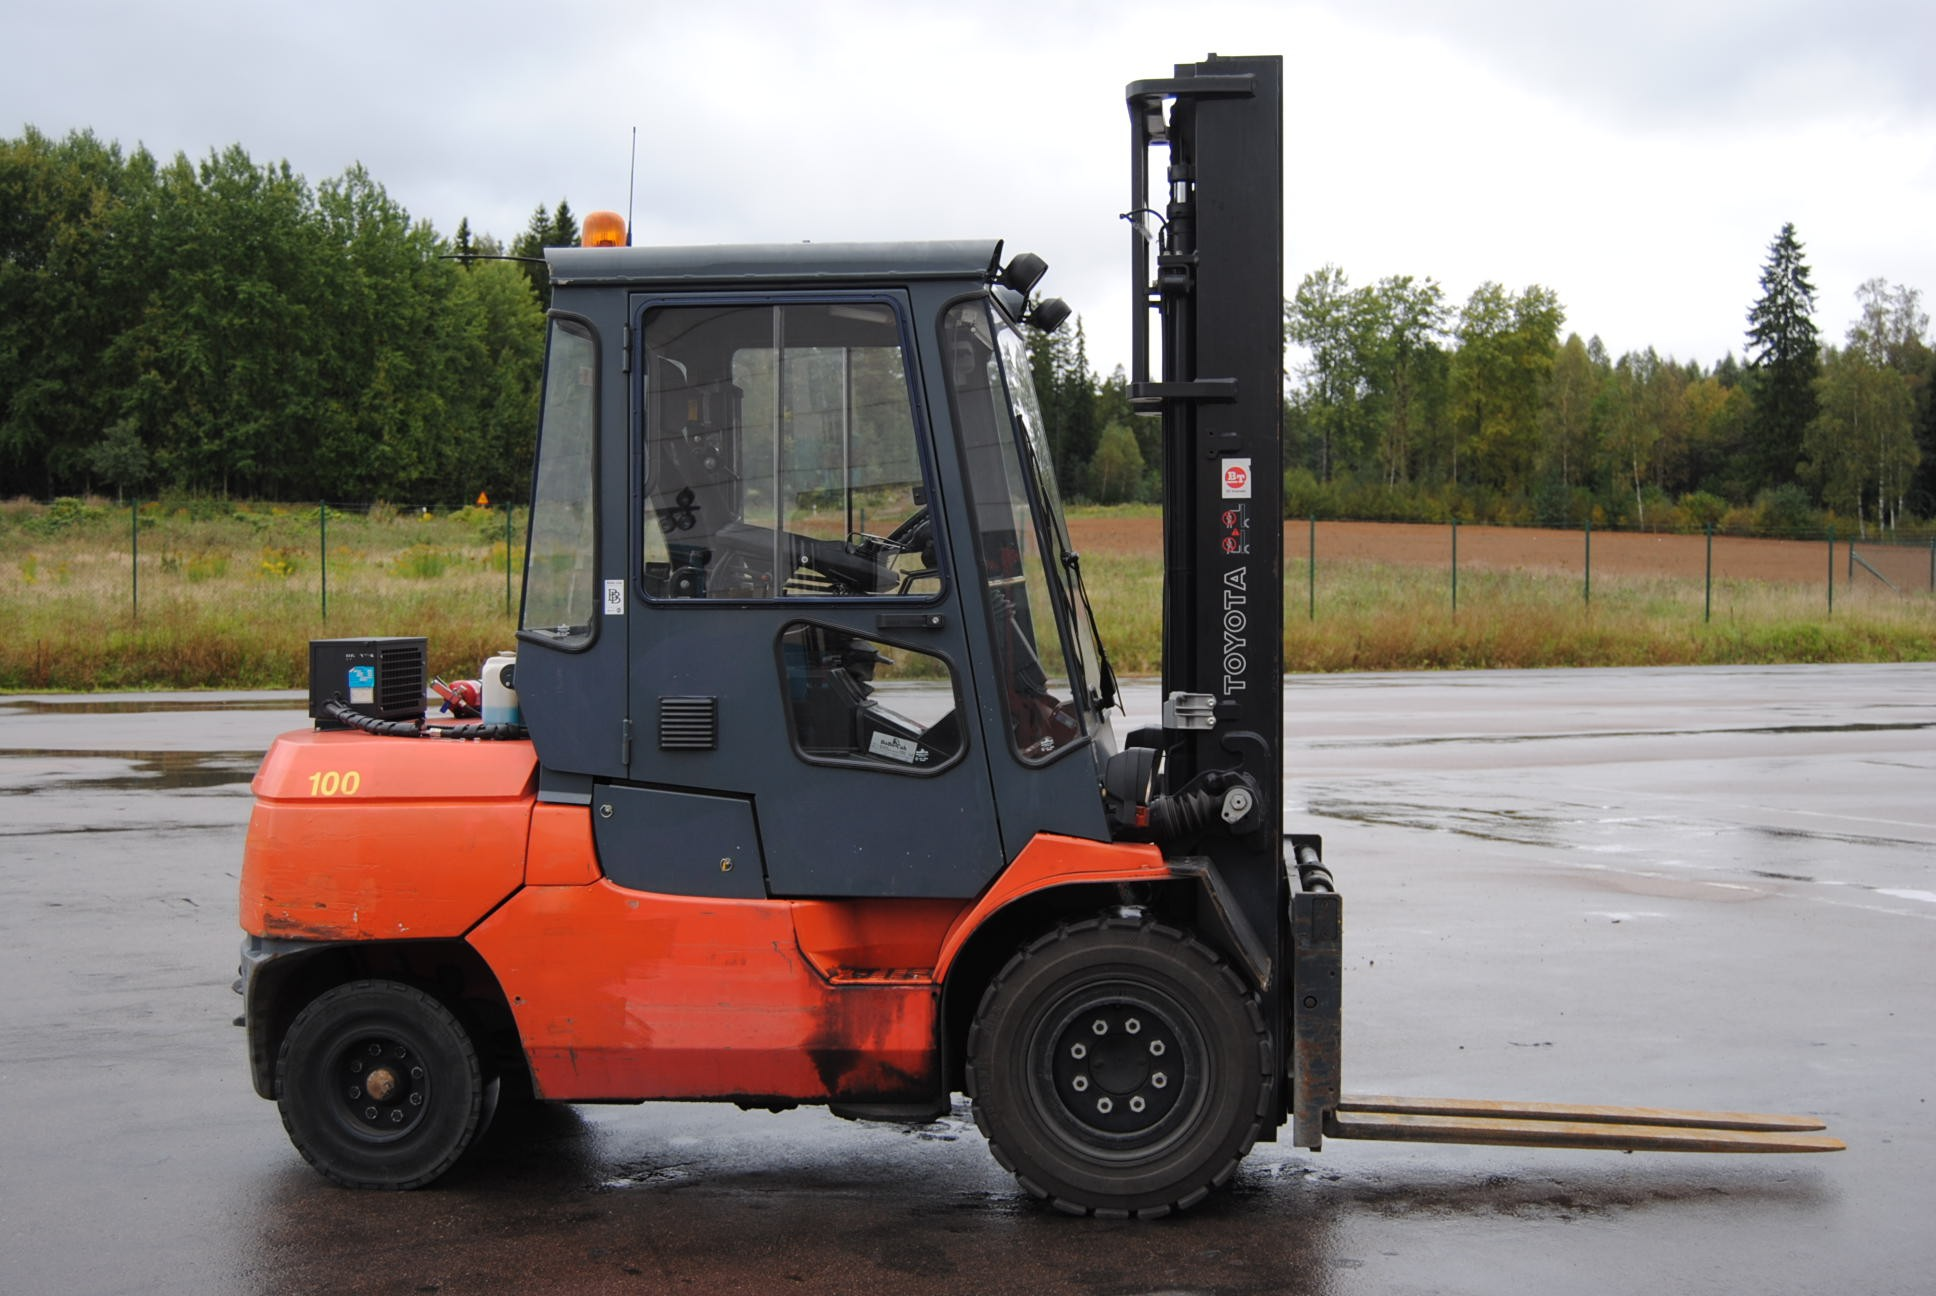 USED TOYOTA FORKLIFT TRUCKS FOR SALE